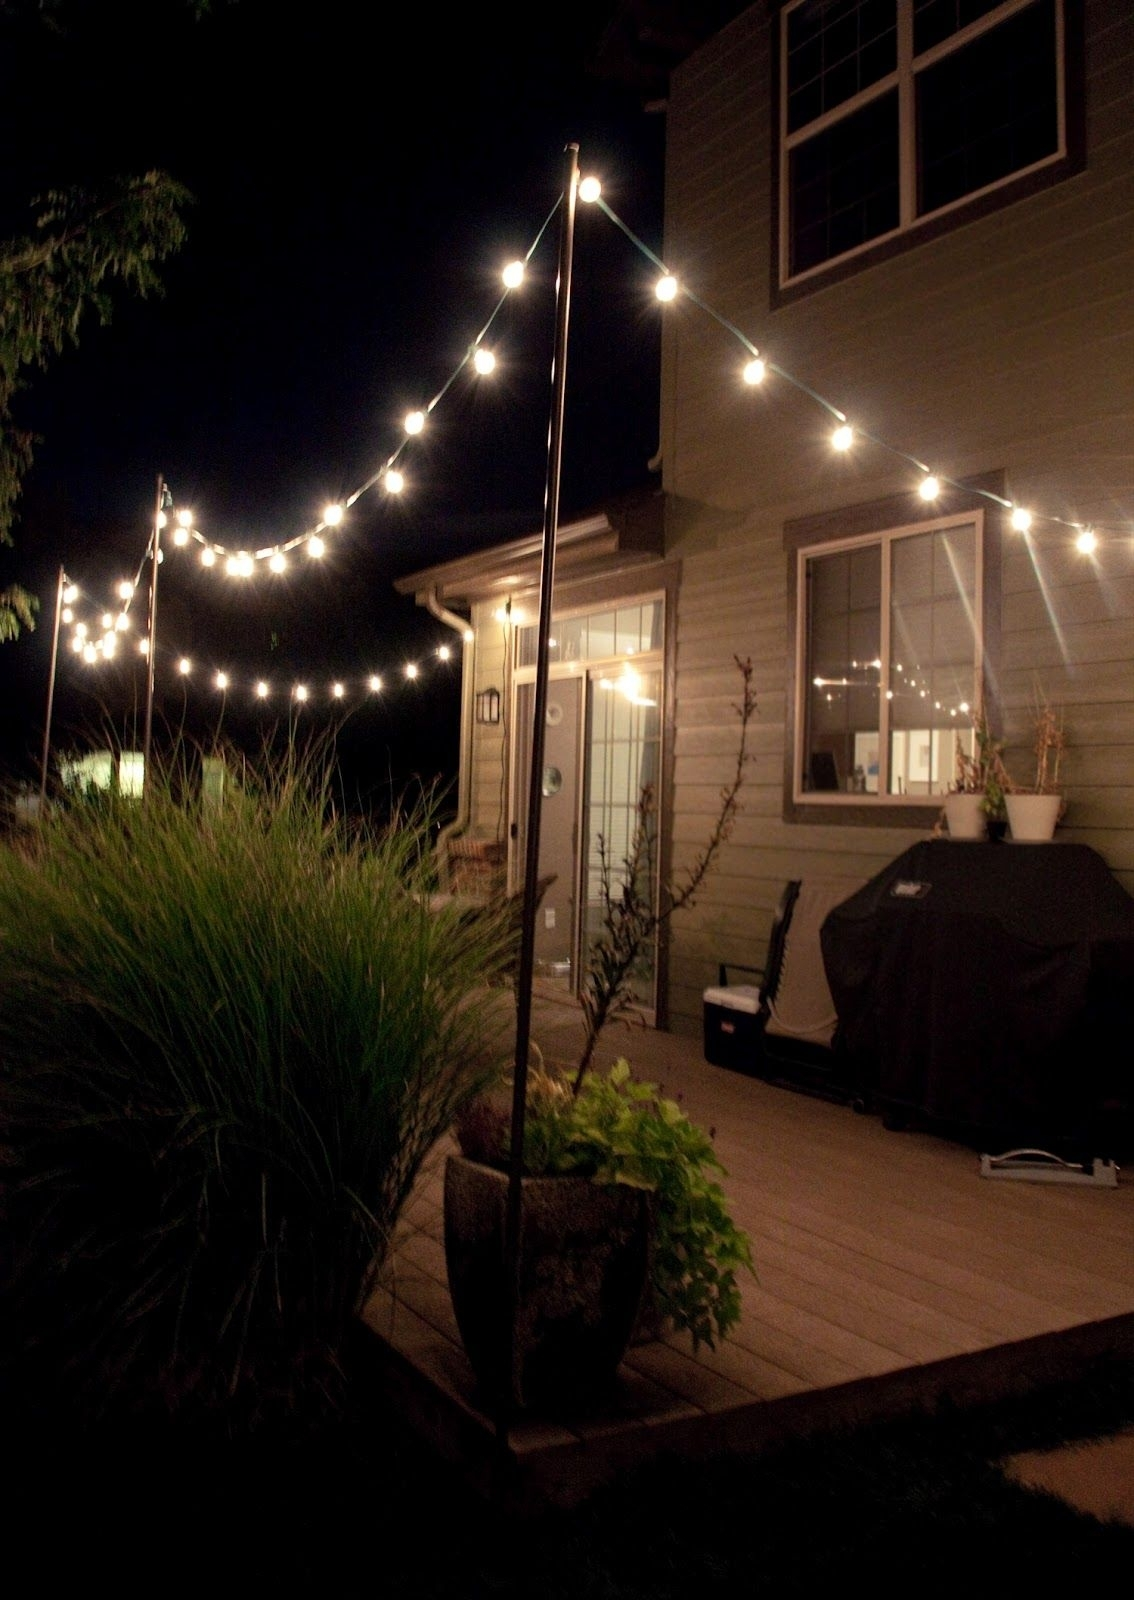 Inspiration about Diy}: Outdoor String Lights | Outdoor String Lighting, Lights And Fairy With Regard To Outdoor String And Patio Lights (#5 of 15)